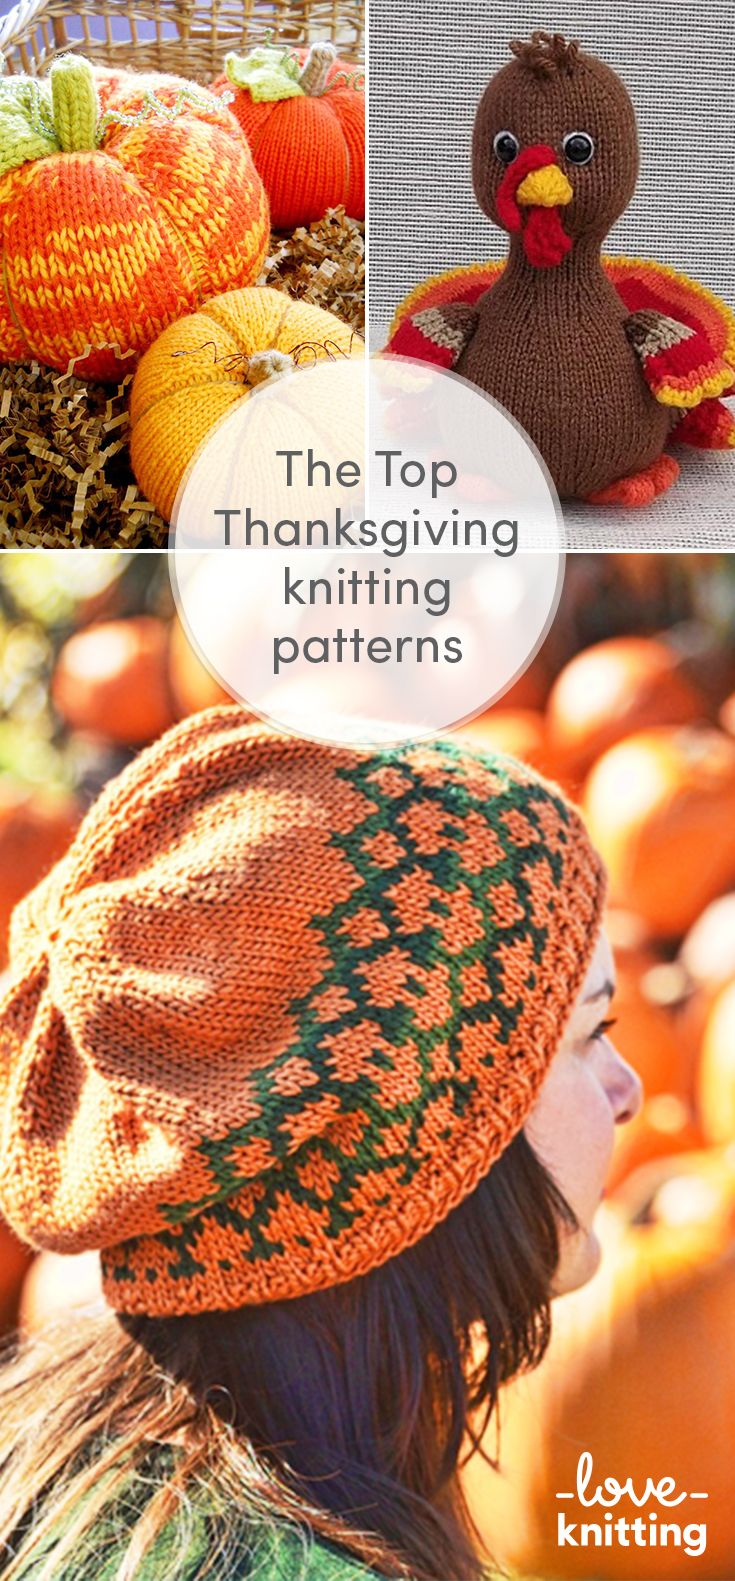 21 best knitting patterns for thanksgiving images on pinterest our range of thanksgiving knitting patterns will help you decorate your home for the holidays with pumpkins turkeys and more bankloansurffo Images